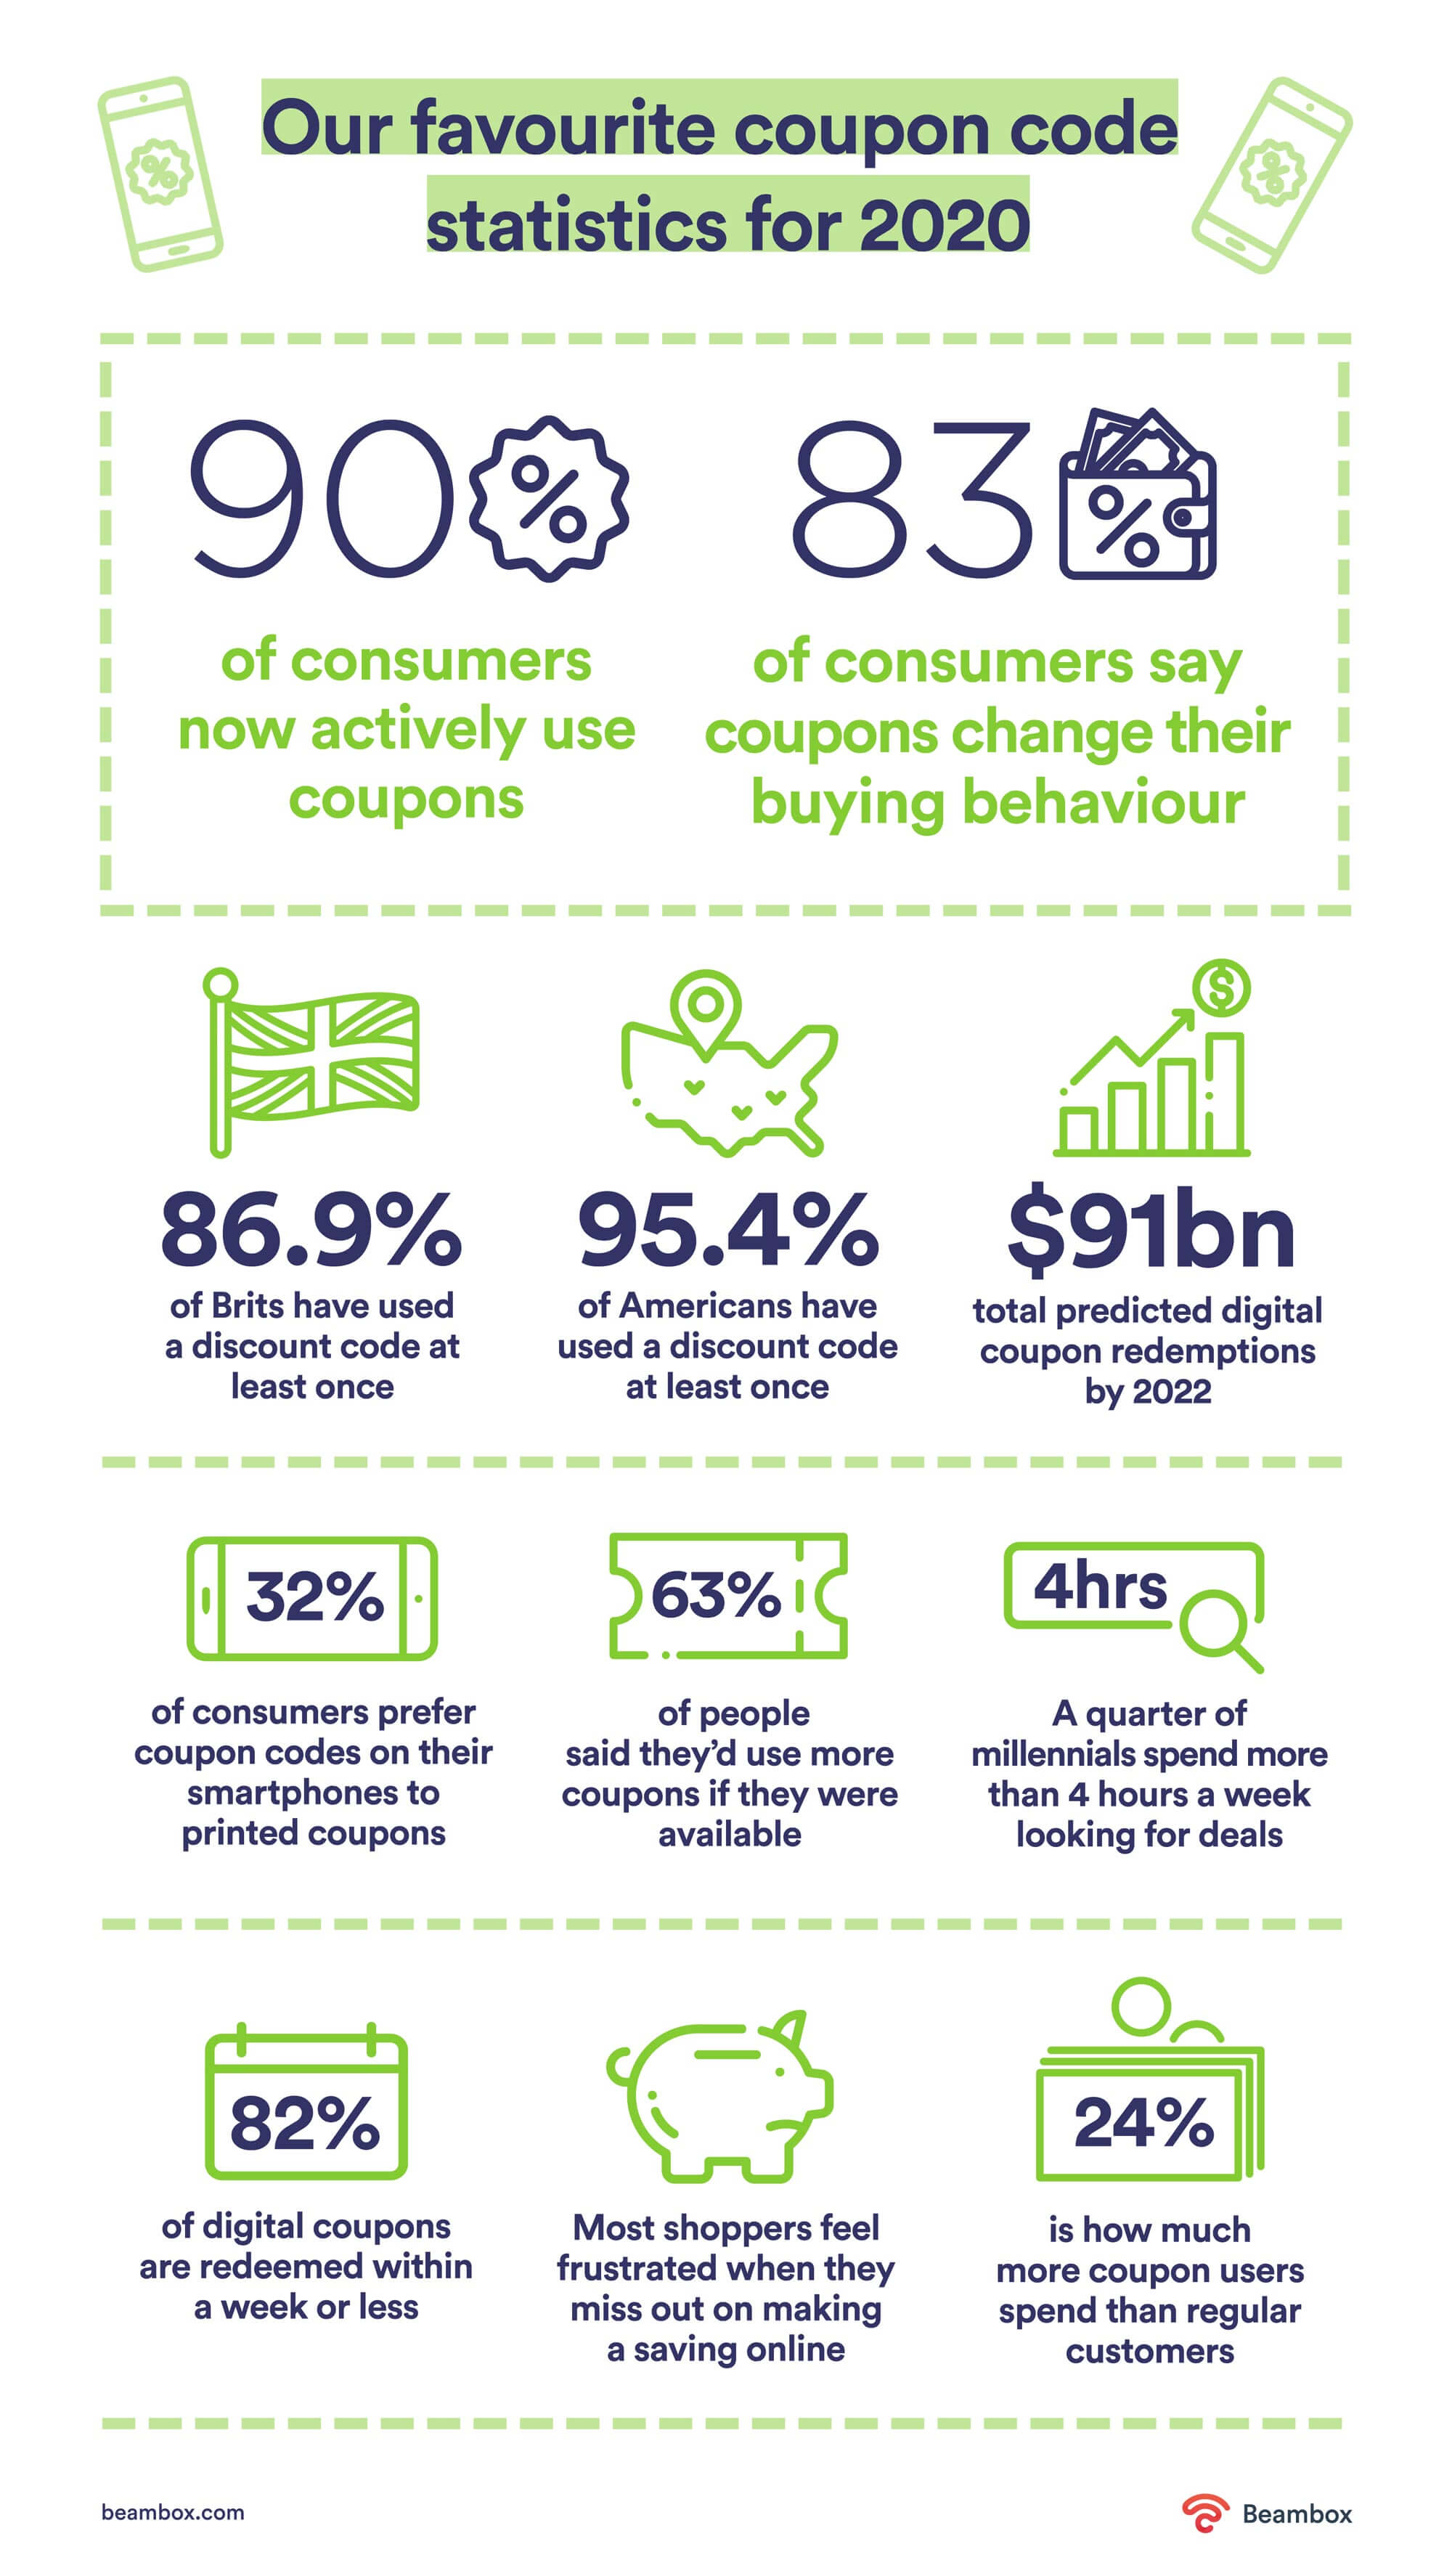 coupon code statistics 2020 infographic